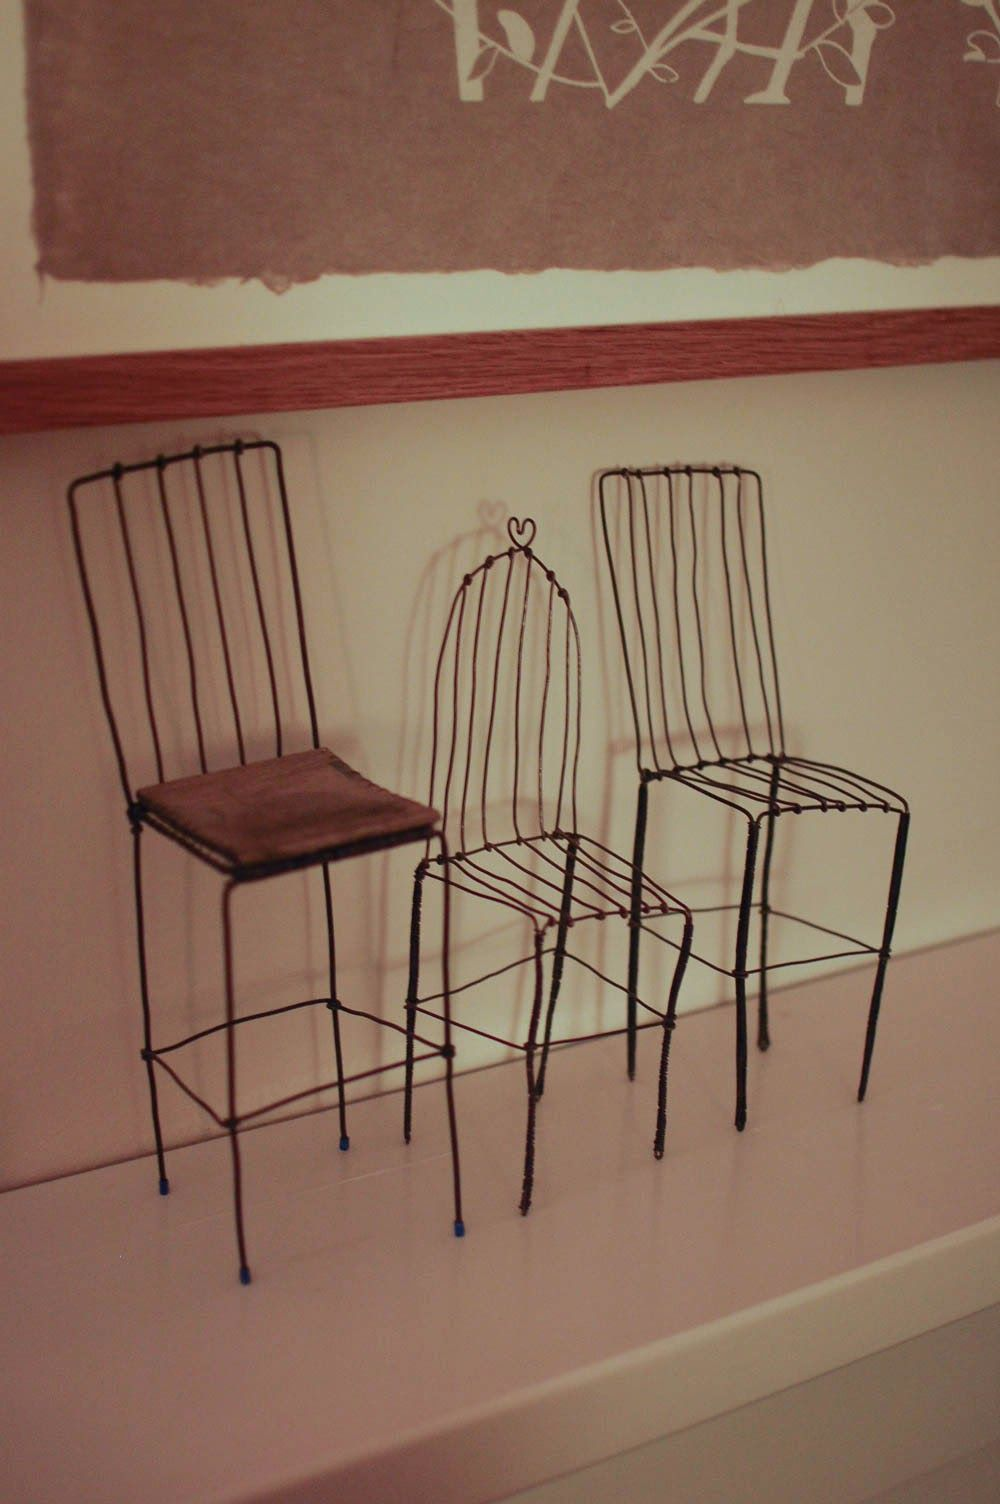 Home Sweet Home Design Crafts Wire Chair Sweet Home